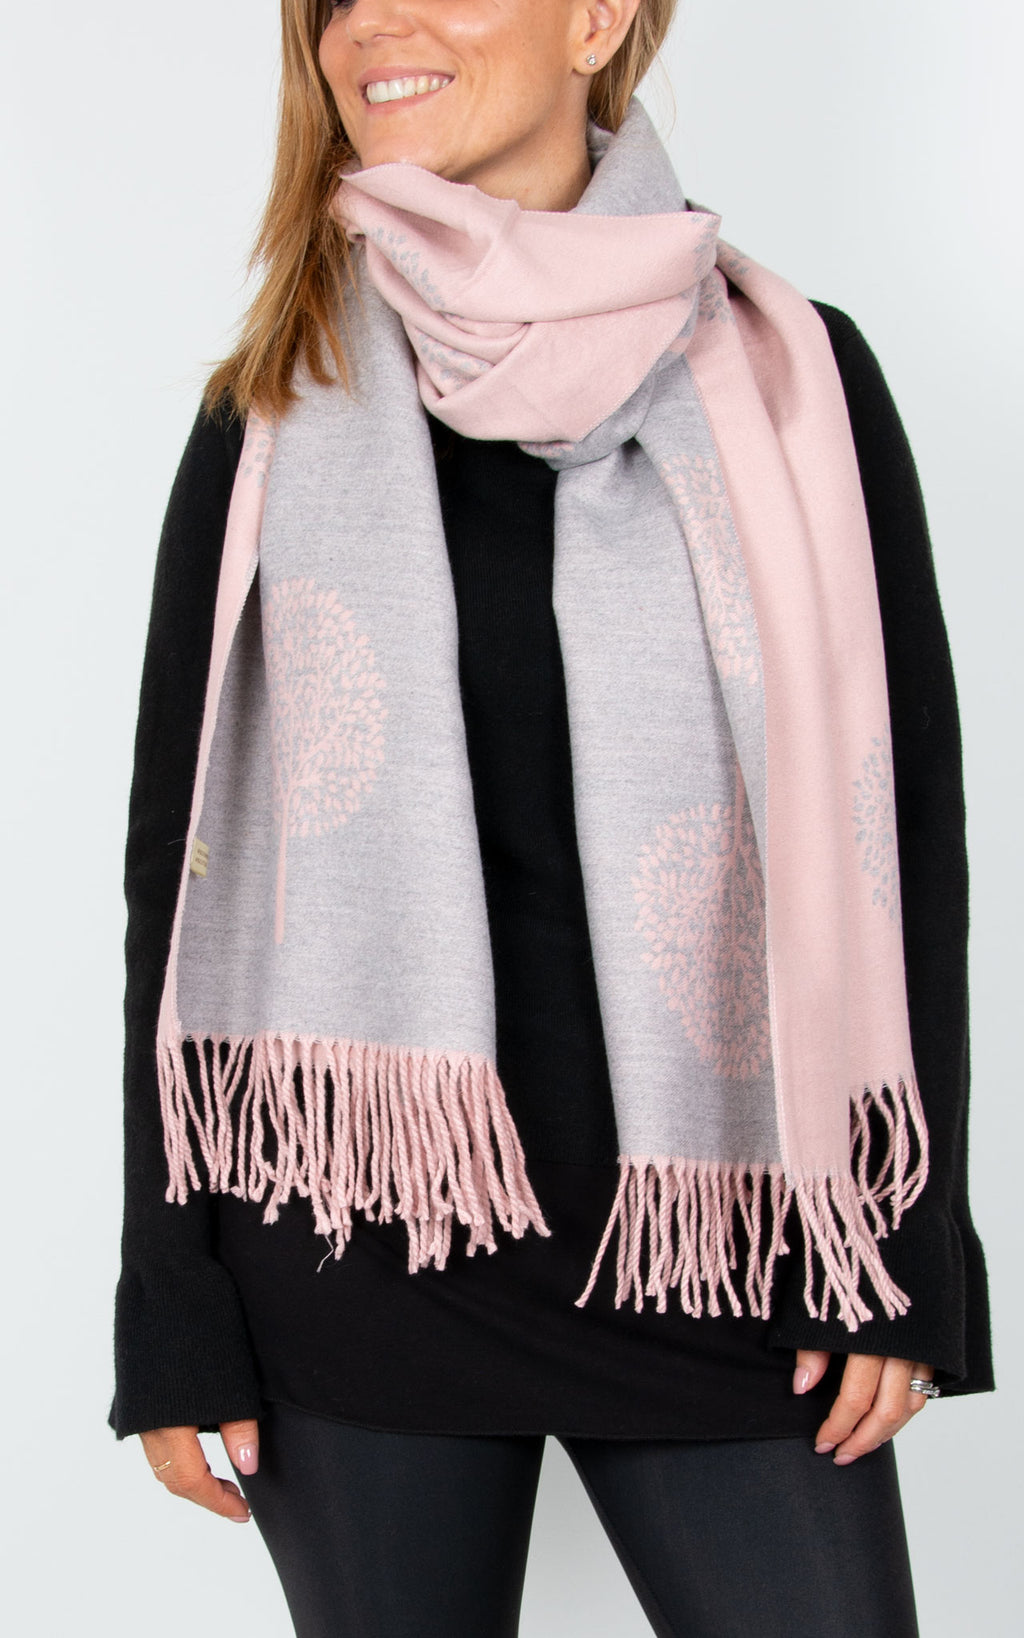 Pink Blanket Scarf - Mulberry tree